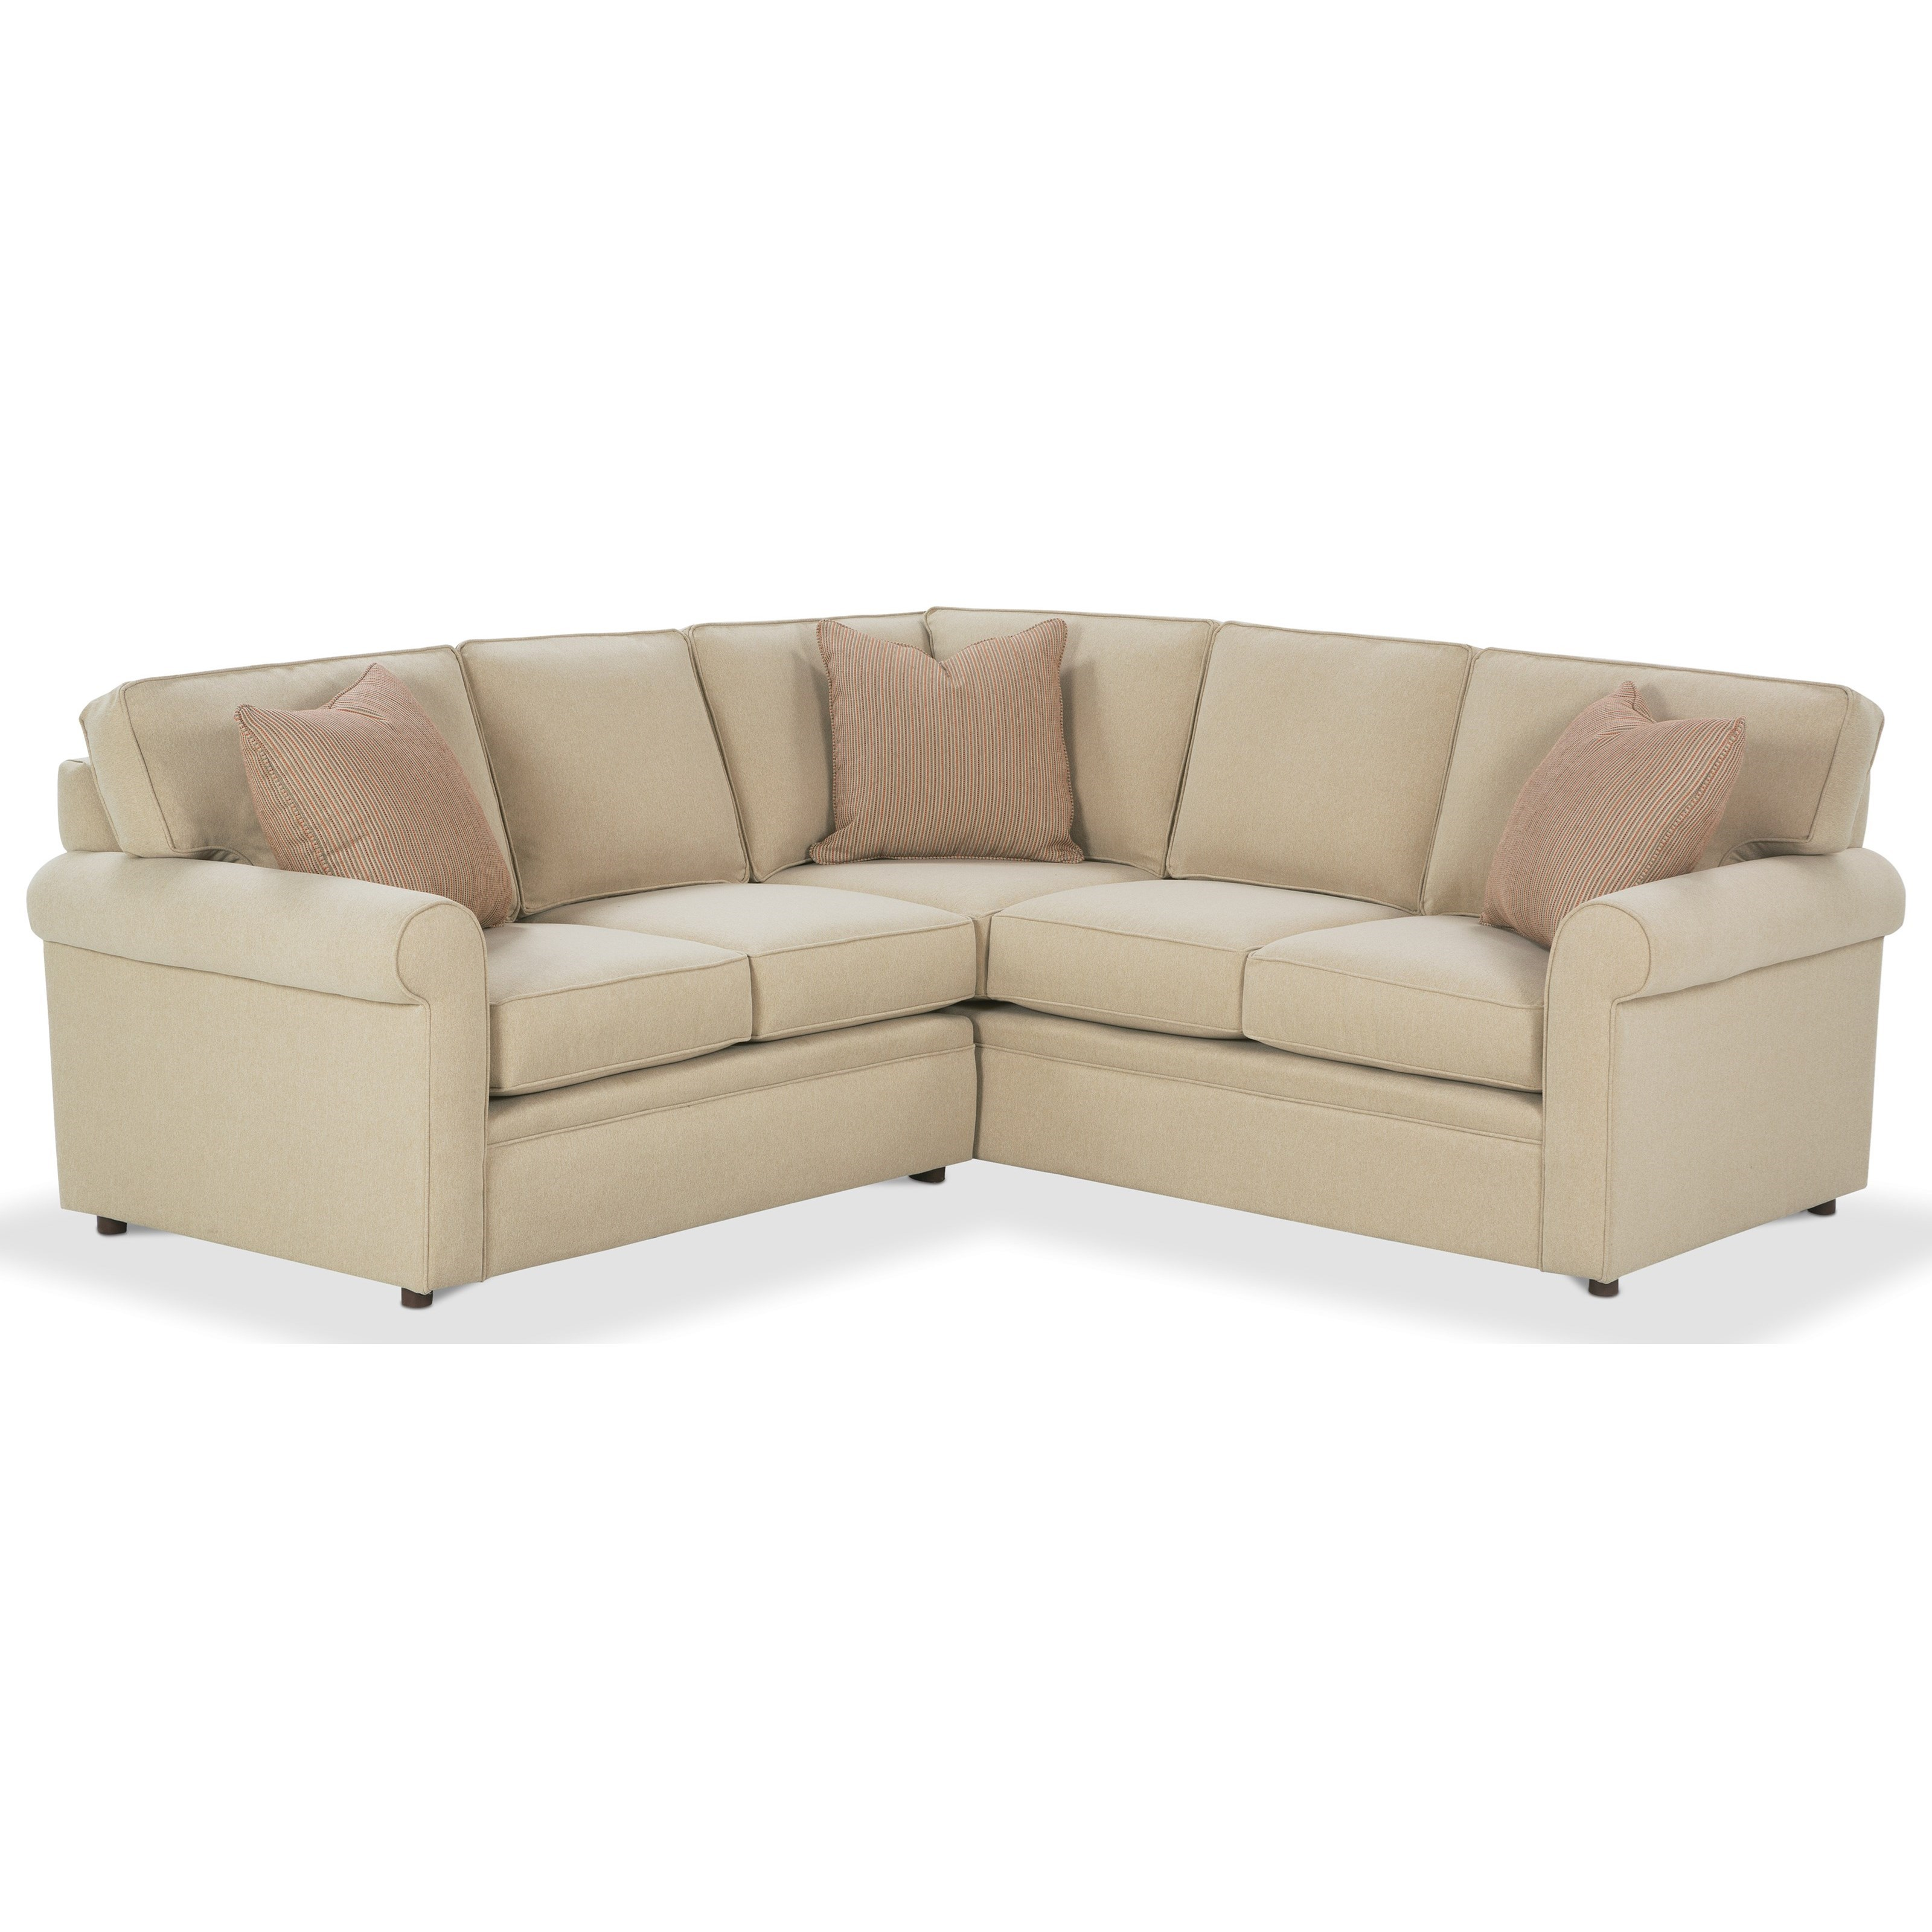 Brentwood Sectional Sofa by Rowe at Baer's Furniture